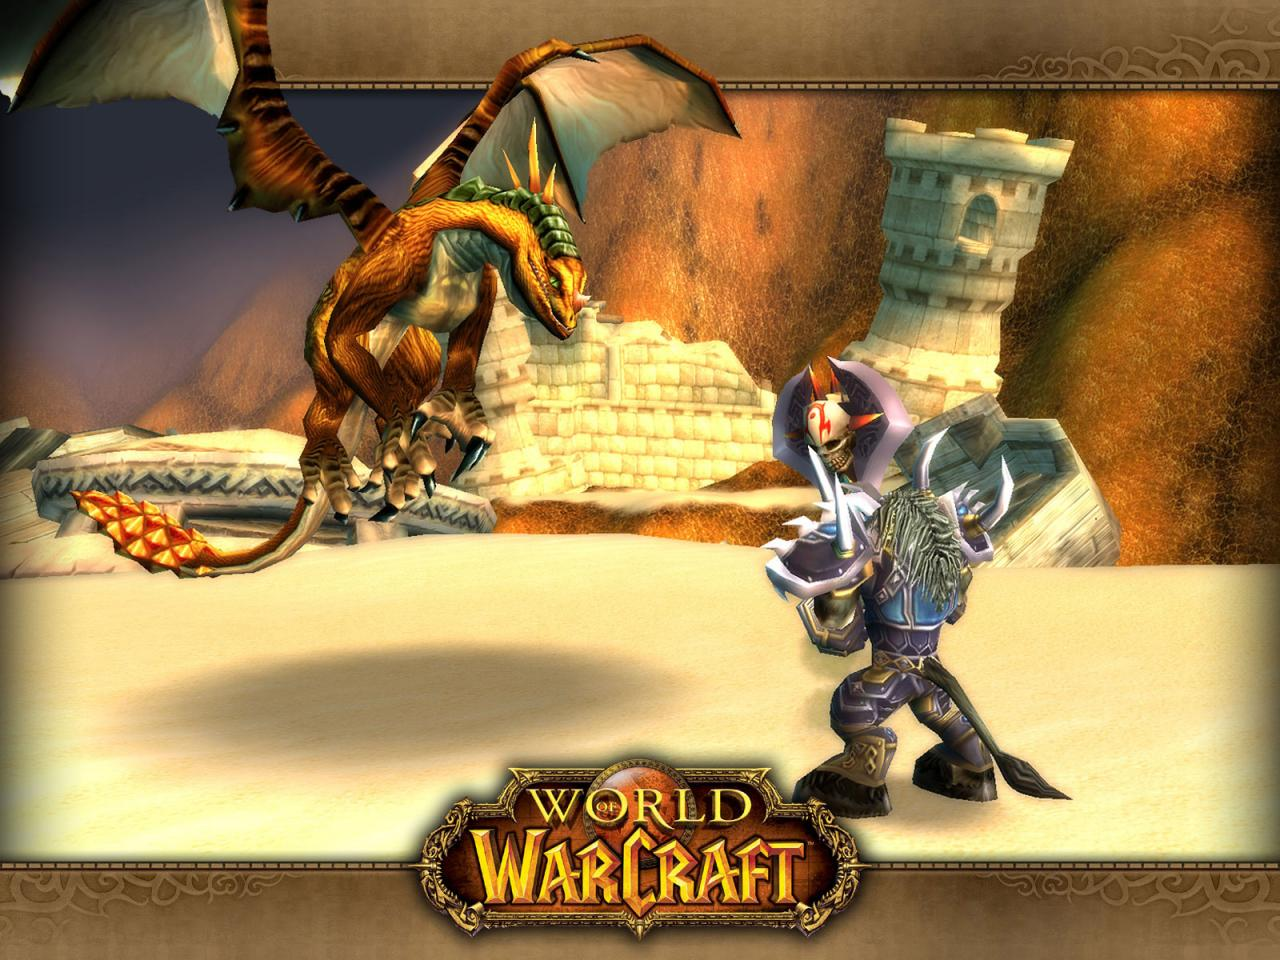 Wallpaper Word of Warcraft WoW bronzedragonhunt